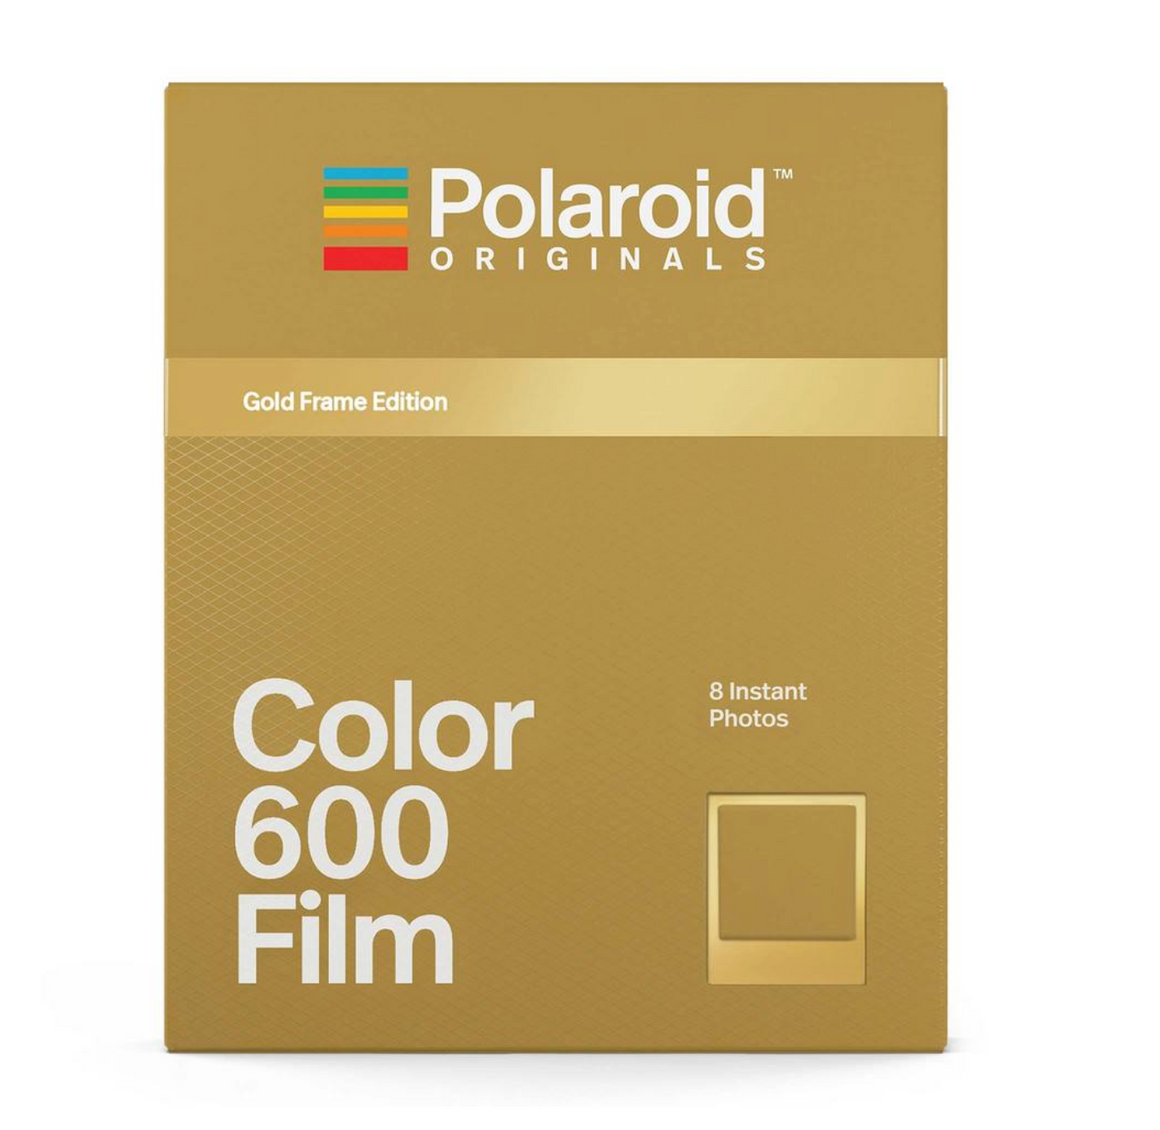 Polaroid Originals - Color 600 Films with Gold Frame Edition